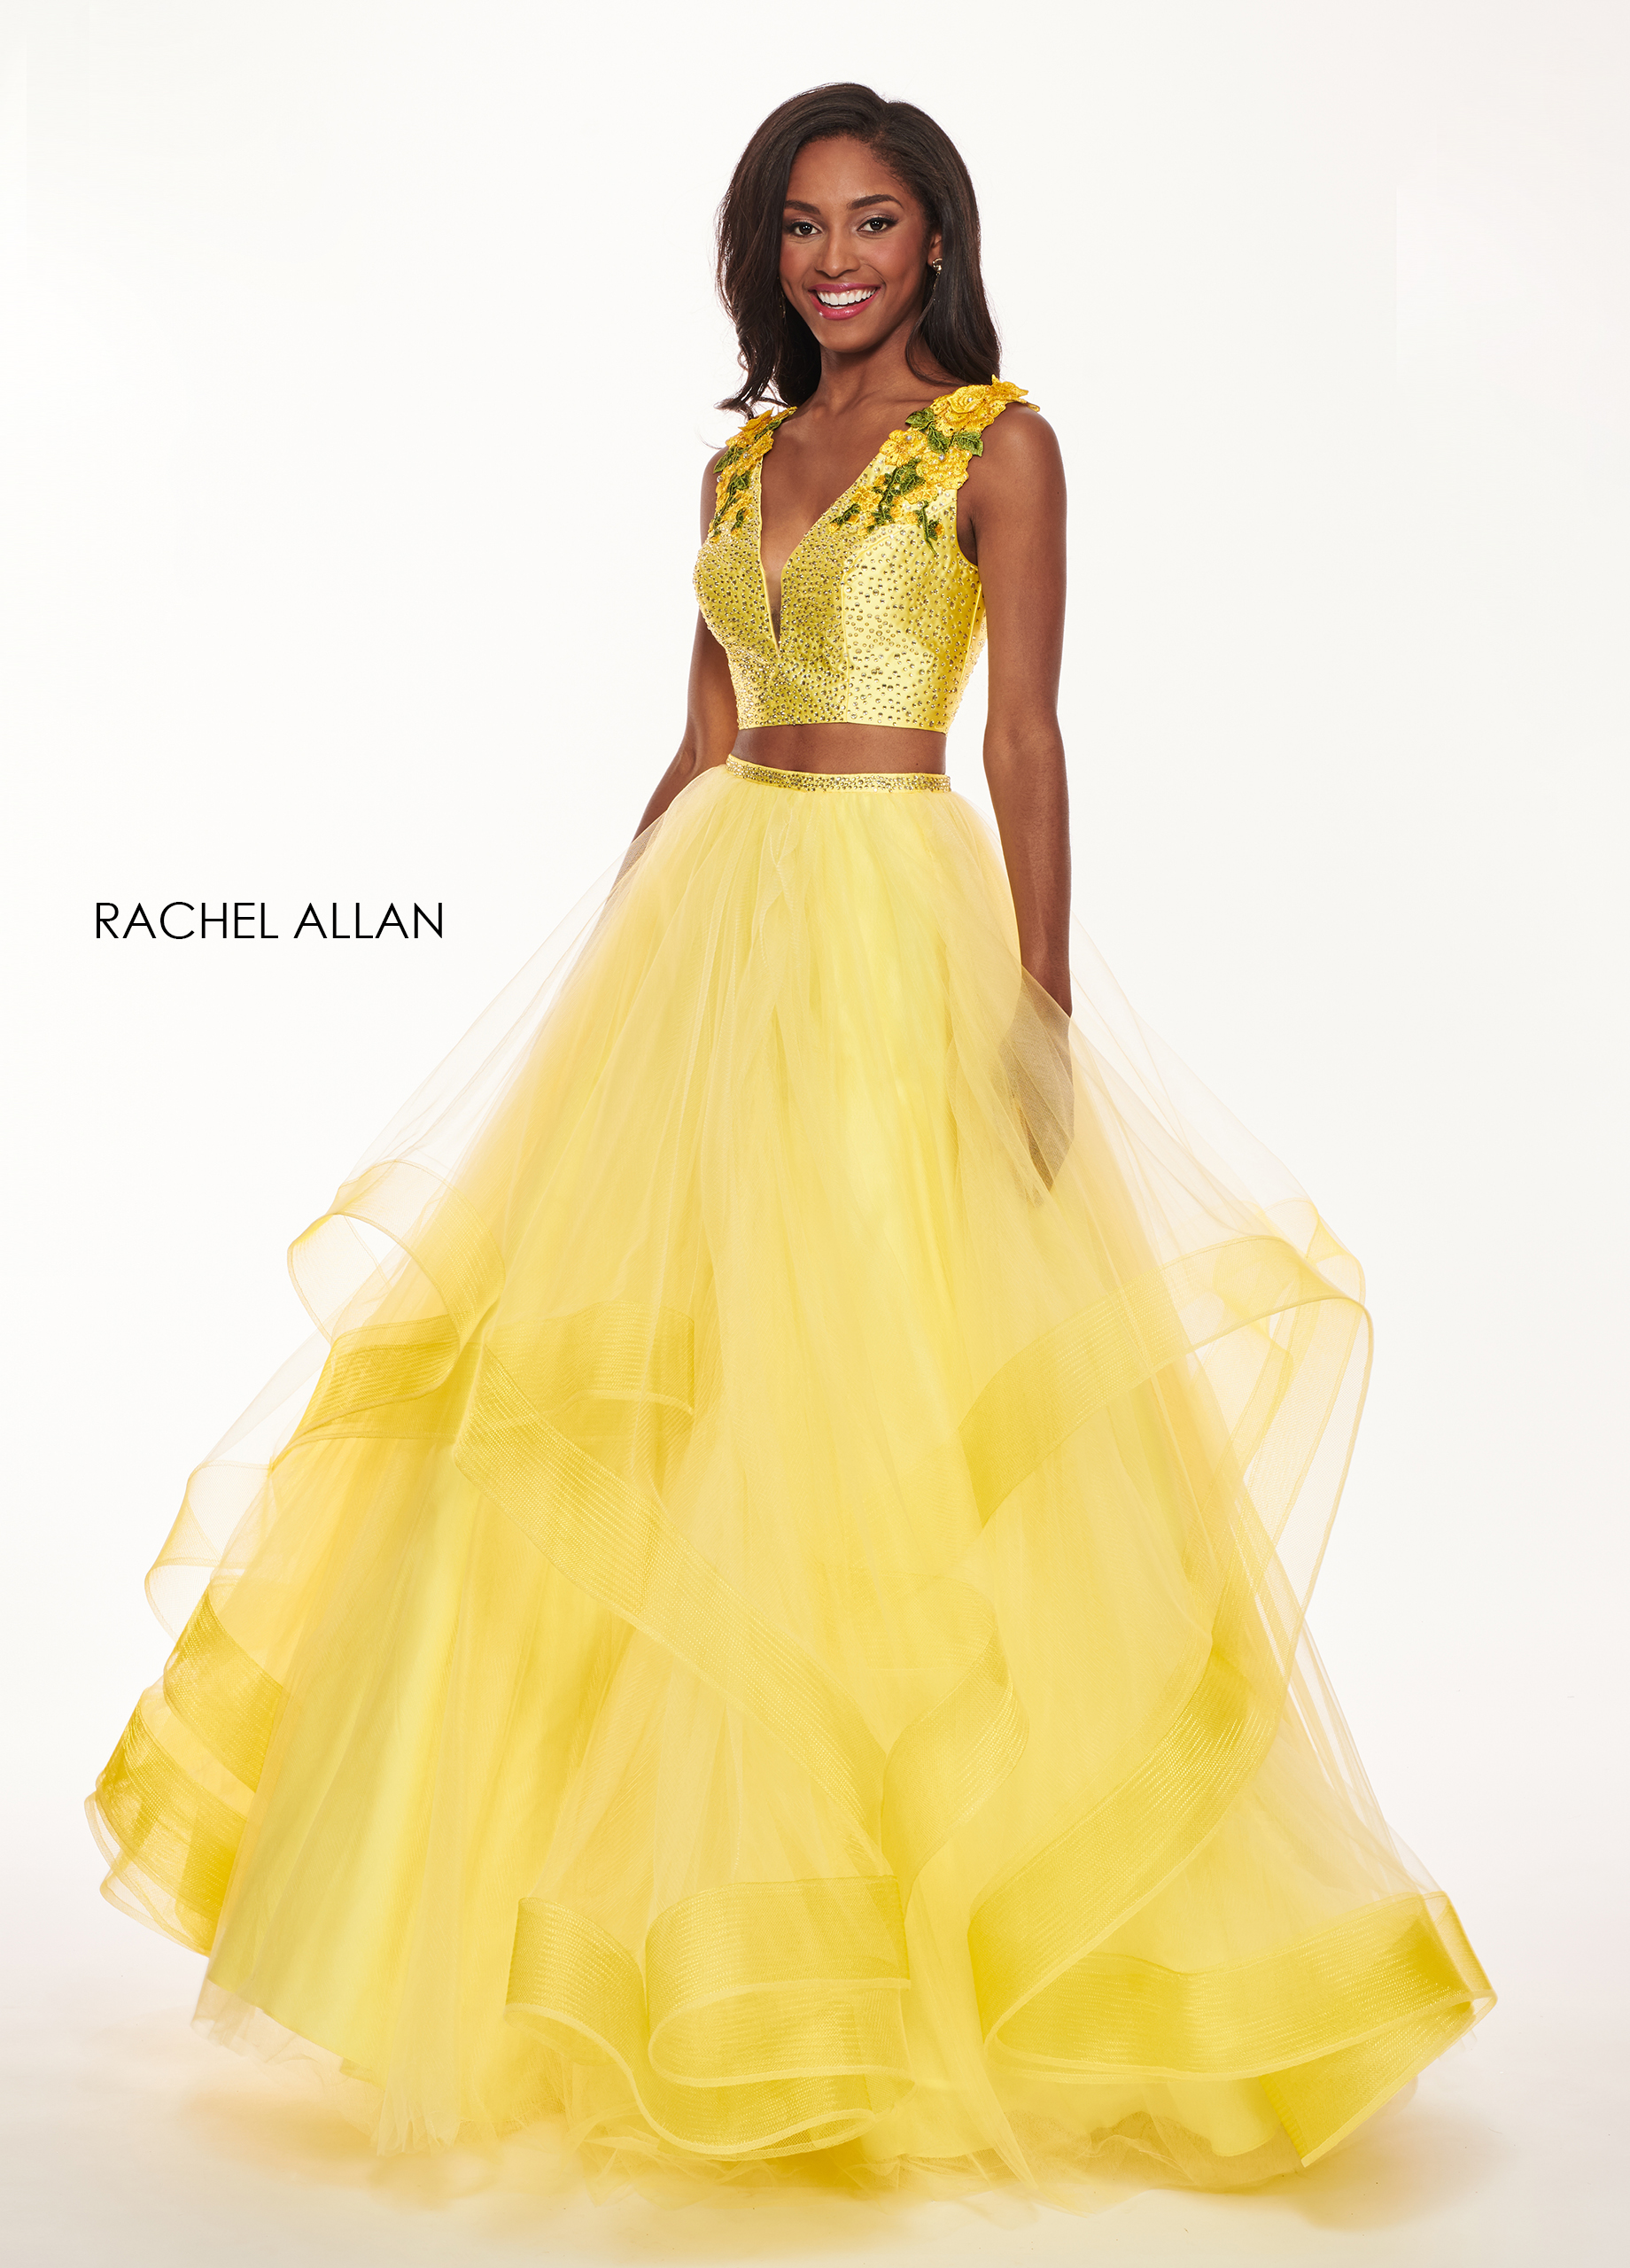 V-Neck Ball Gowns Prom Dresses in Yellow Color